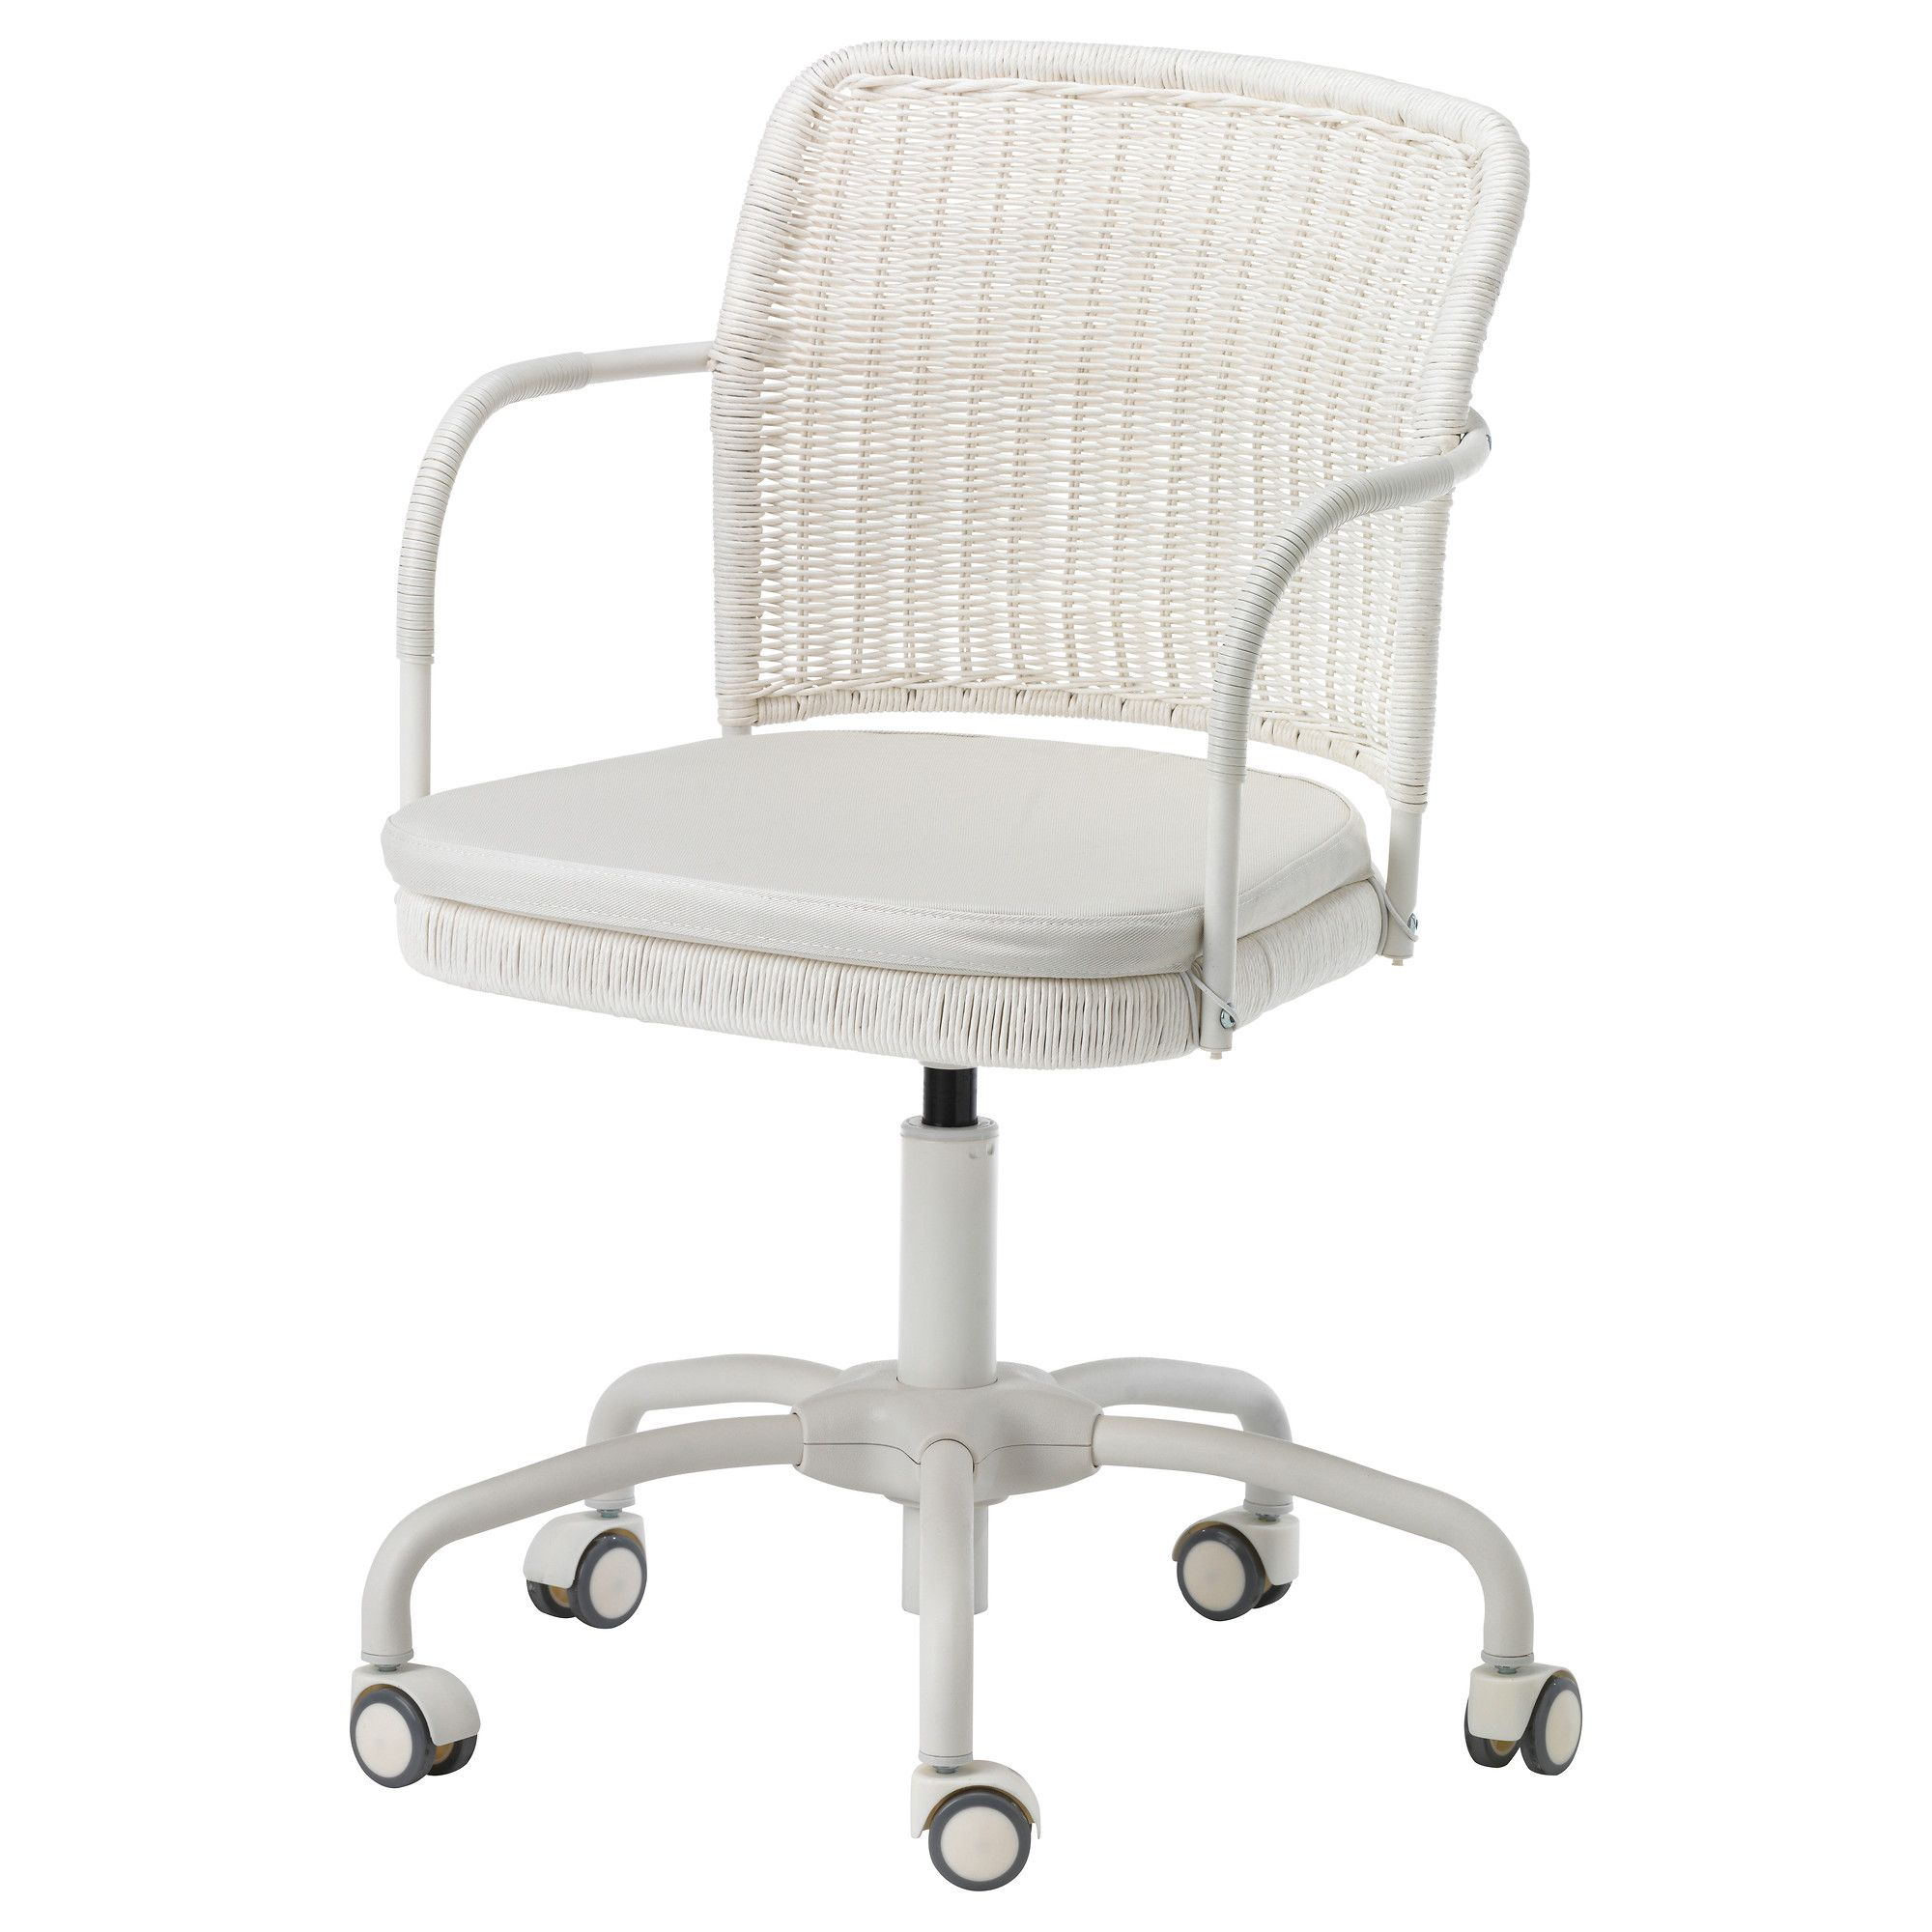 My diy office project gregor swivel chair vittaryd white ikea office chair wicker